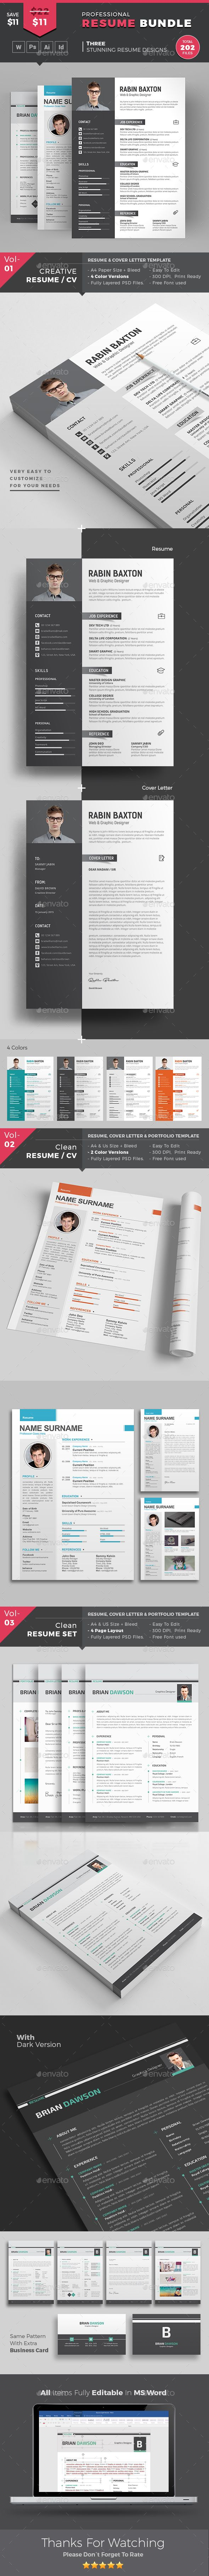 Resume by themedevisers Resume Word Template Bundle